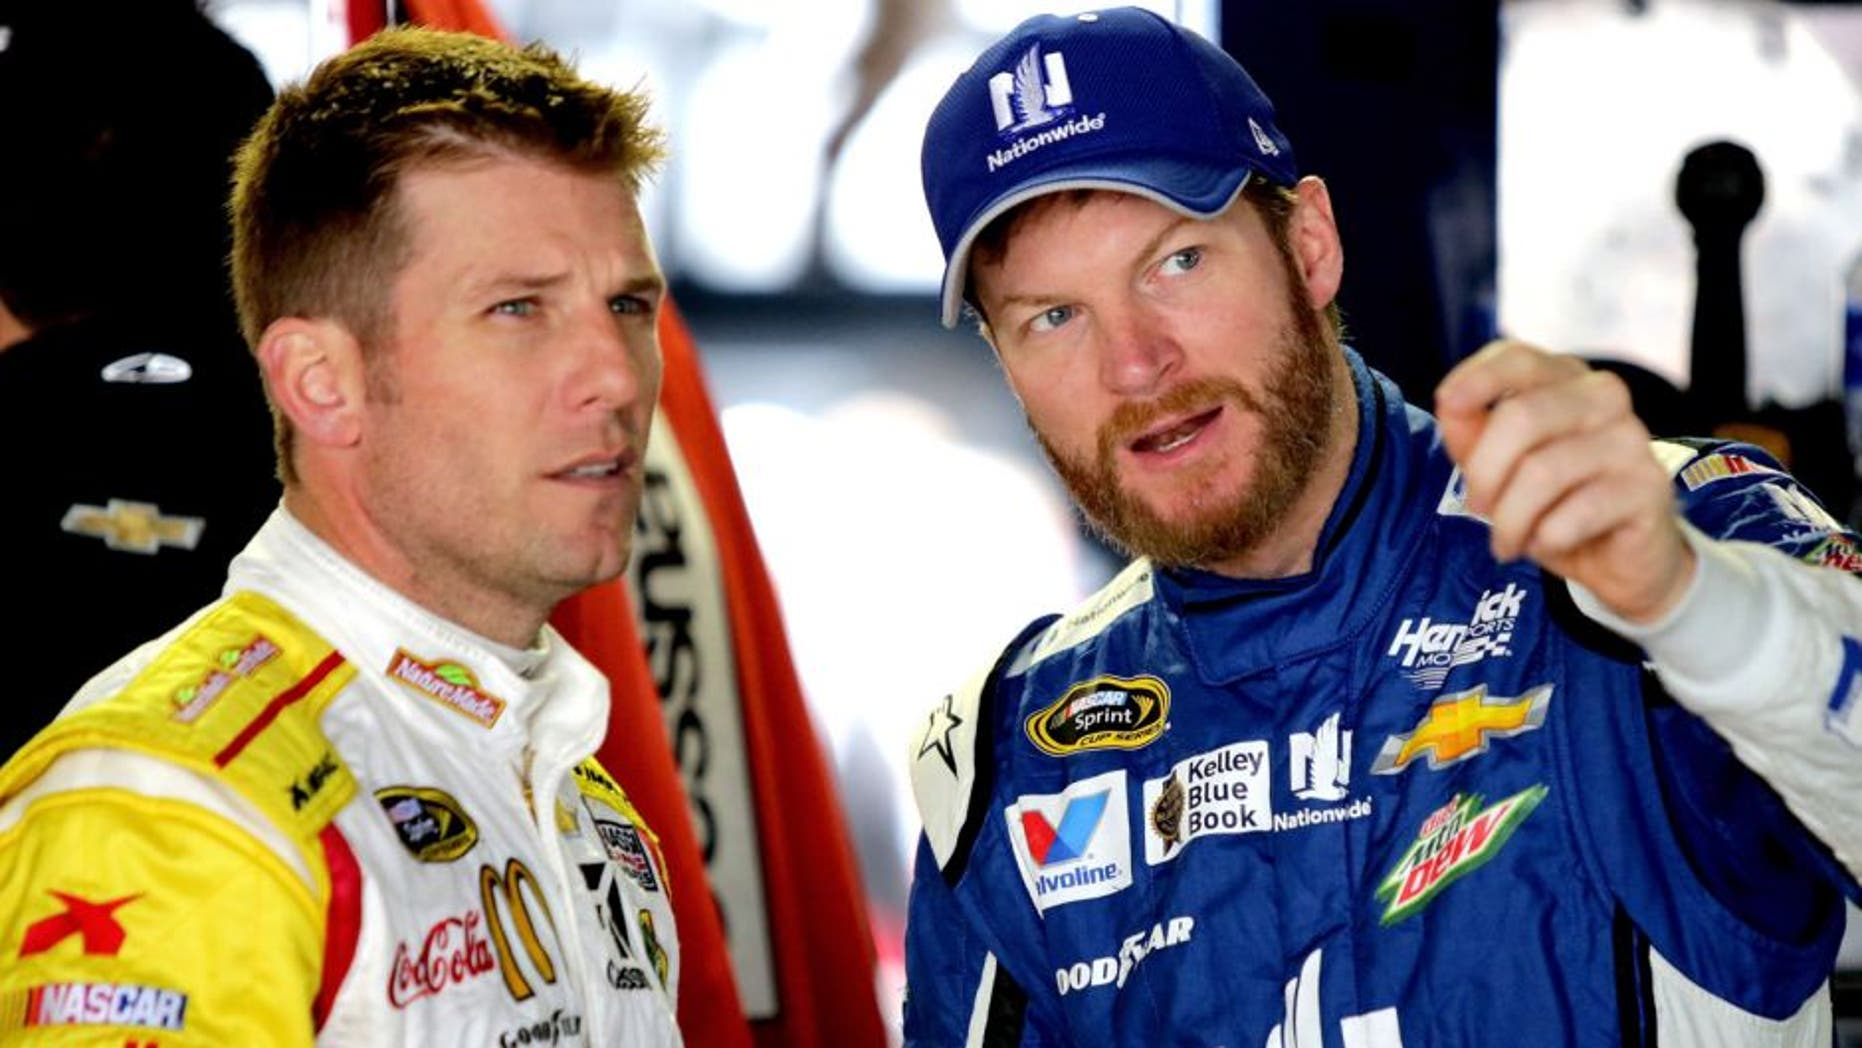 DOVER, DE - OCTOBER 03: (L-R) Jamie McMurray, driver of the #1 Nature Made Chevrolet, talks to Dale Earnrhardt Jr., driver of the #88 Nationwide Plenti Chevrolet, during practice for the NASCAR Sprint Cup Series AAA 400 at Dover International Speedway on October 3, 2015 in Dover, Delaware. (Photo by Jerry Markland/Getty Images)